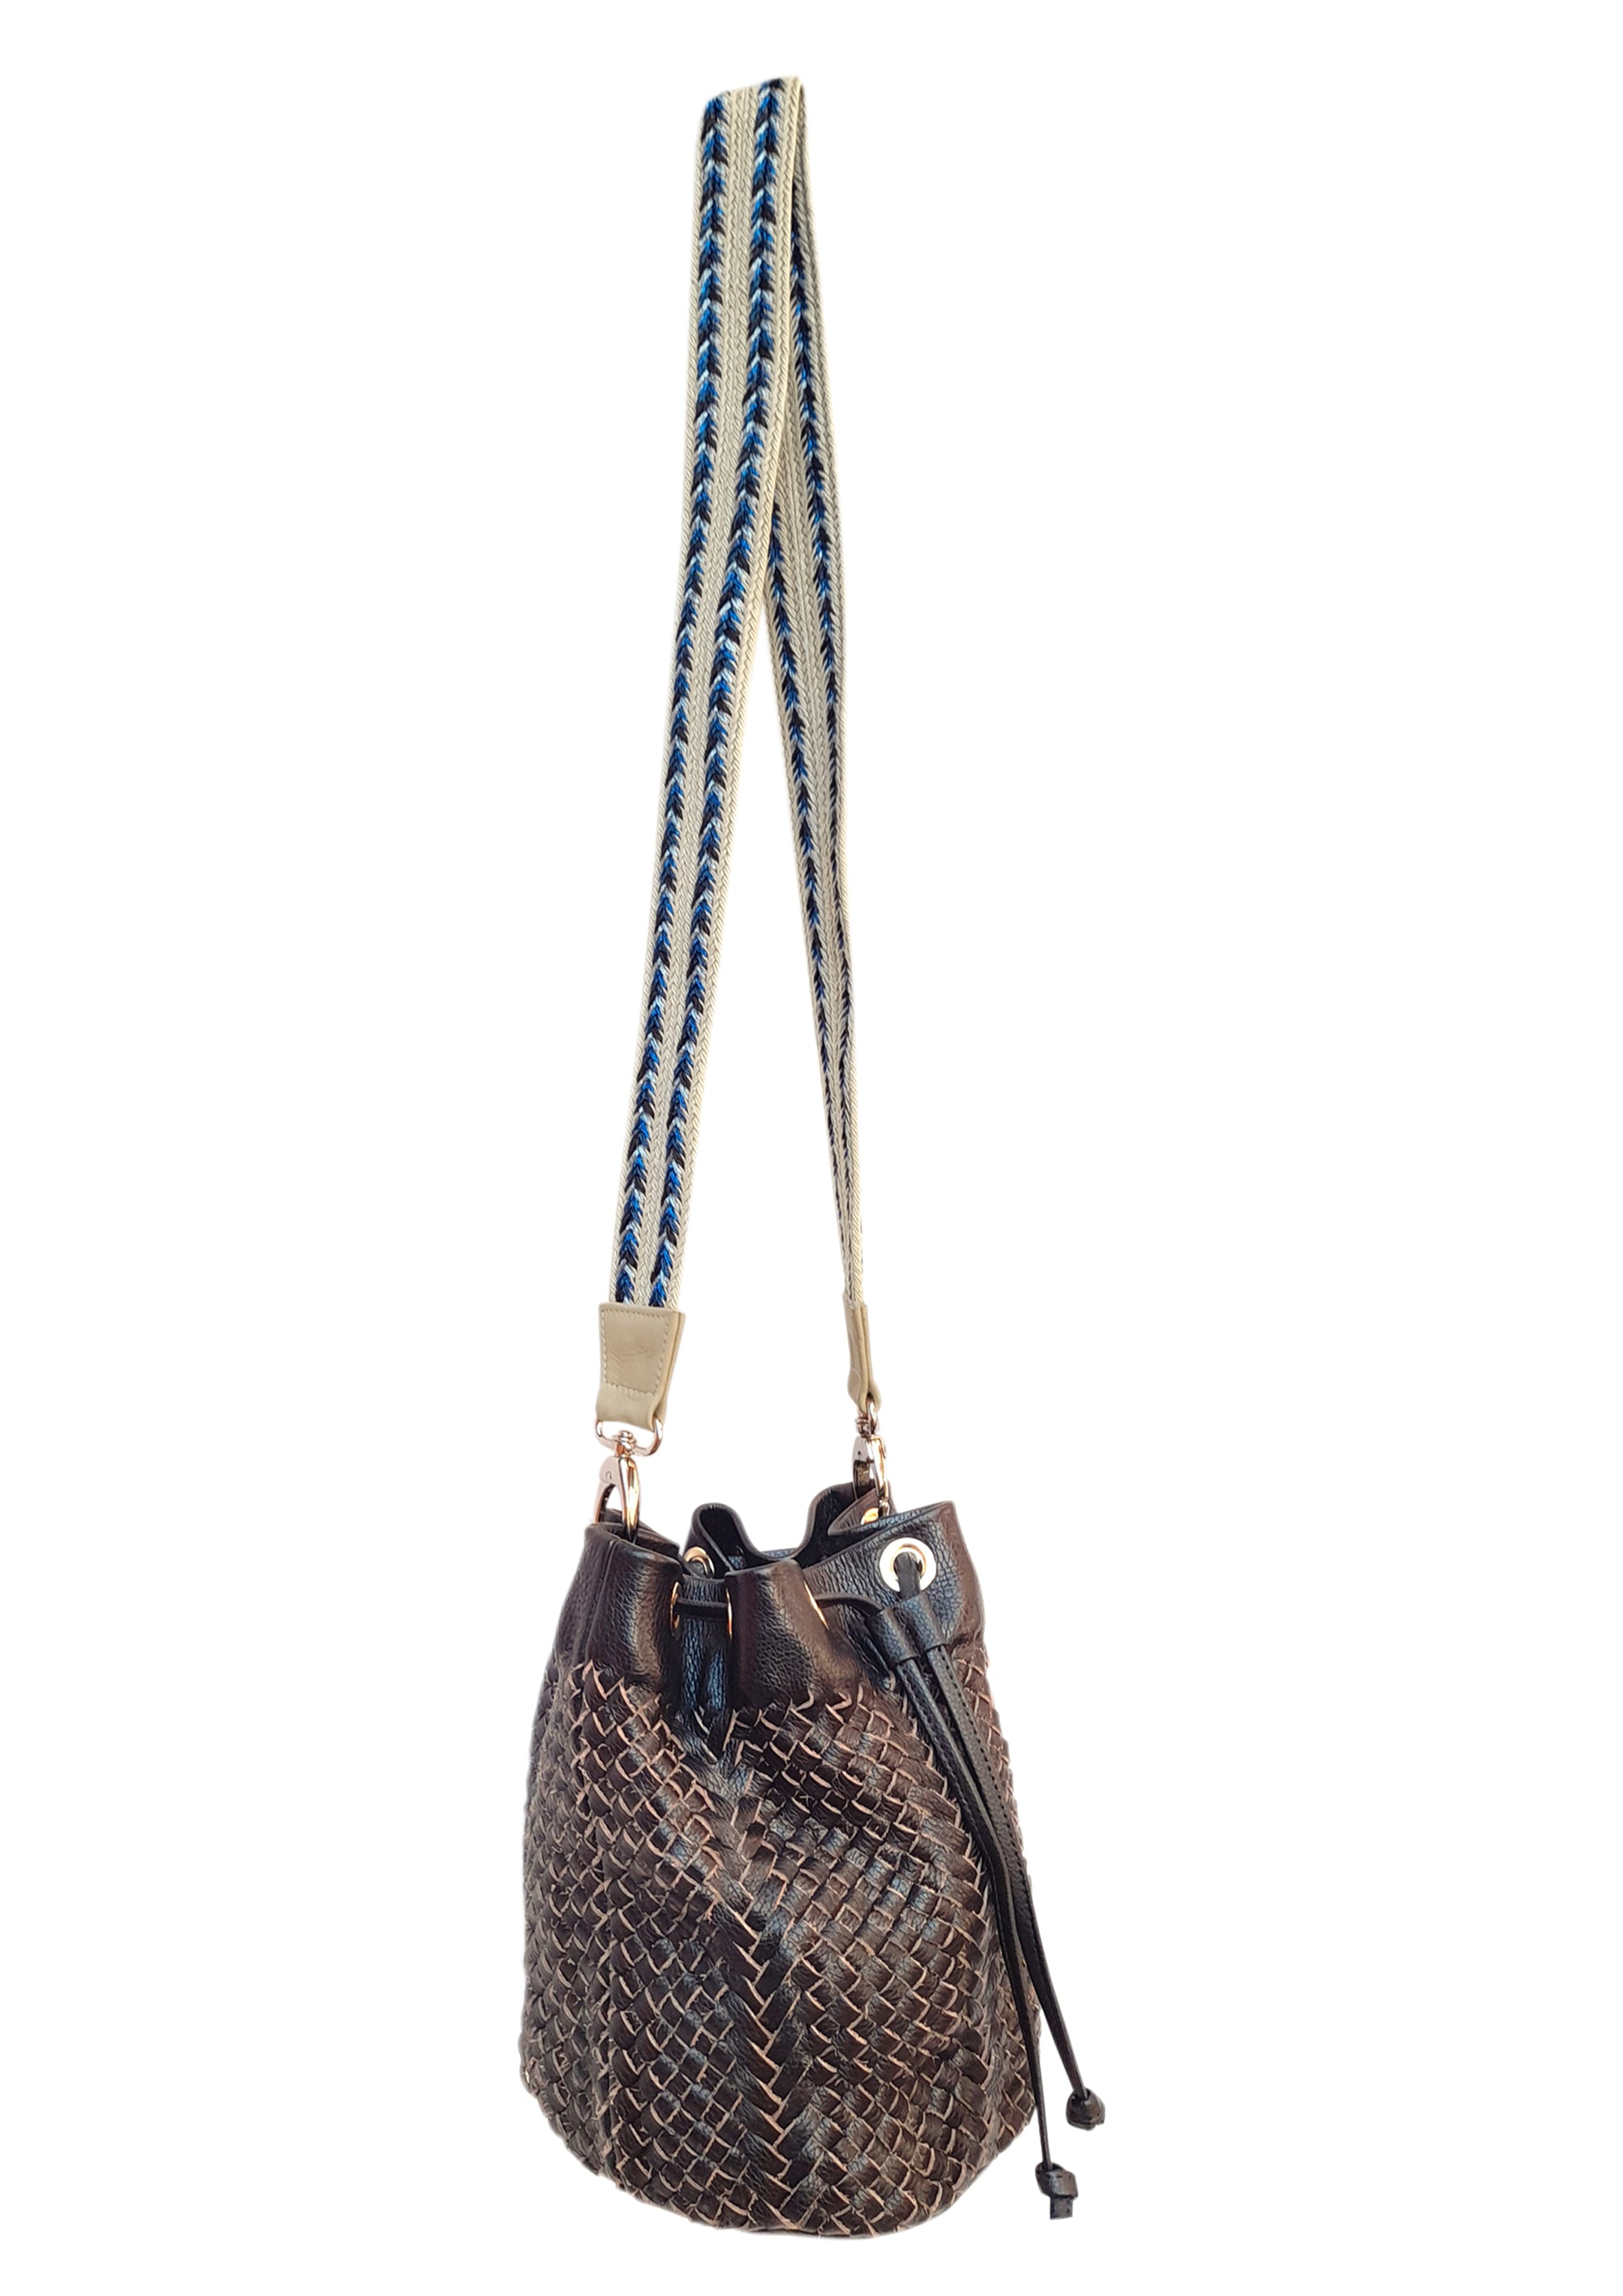 Angelo Woven Leather Bag - Chocolate